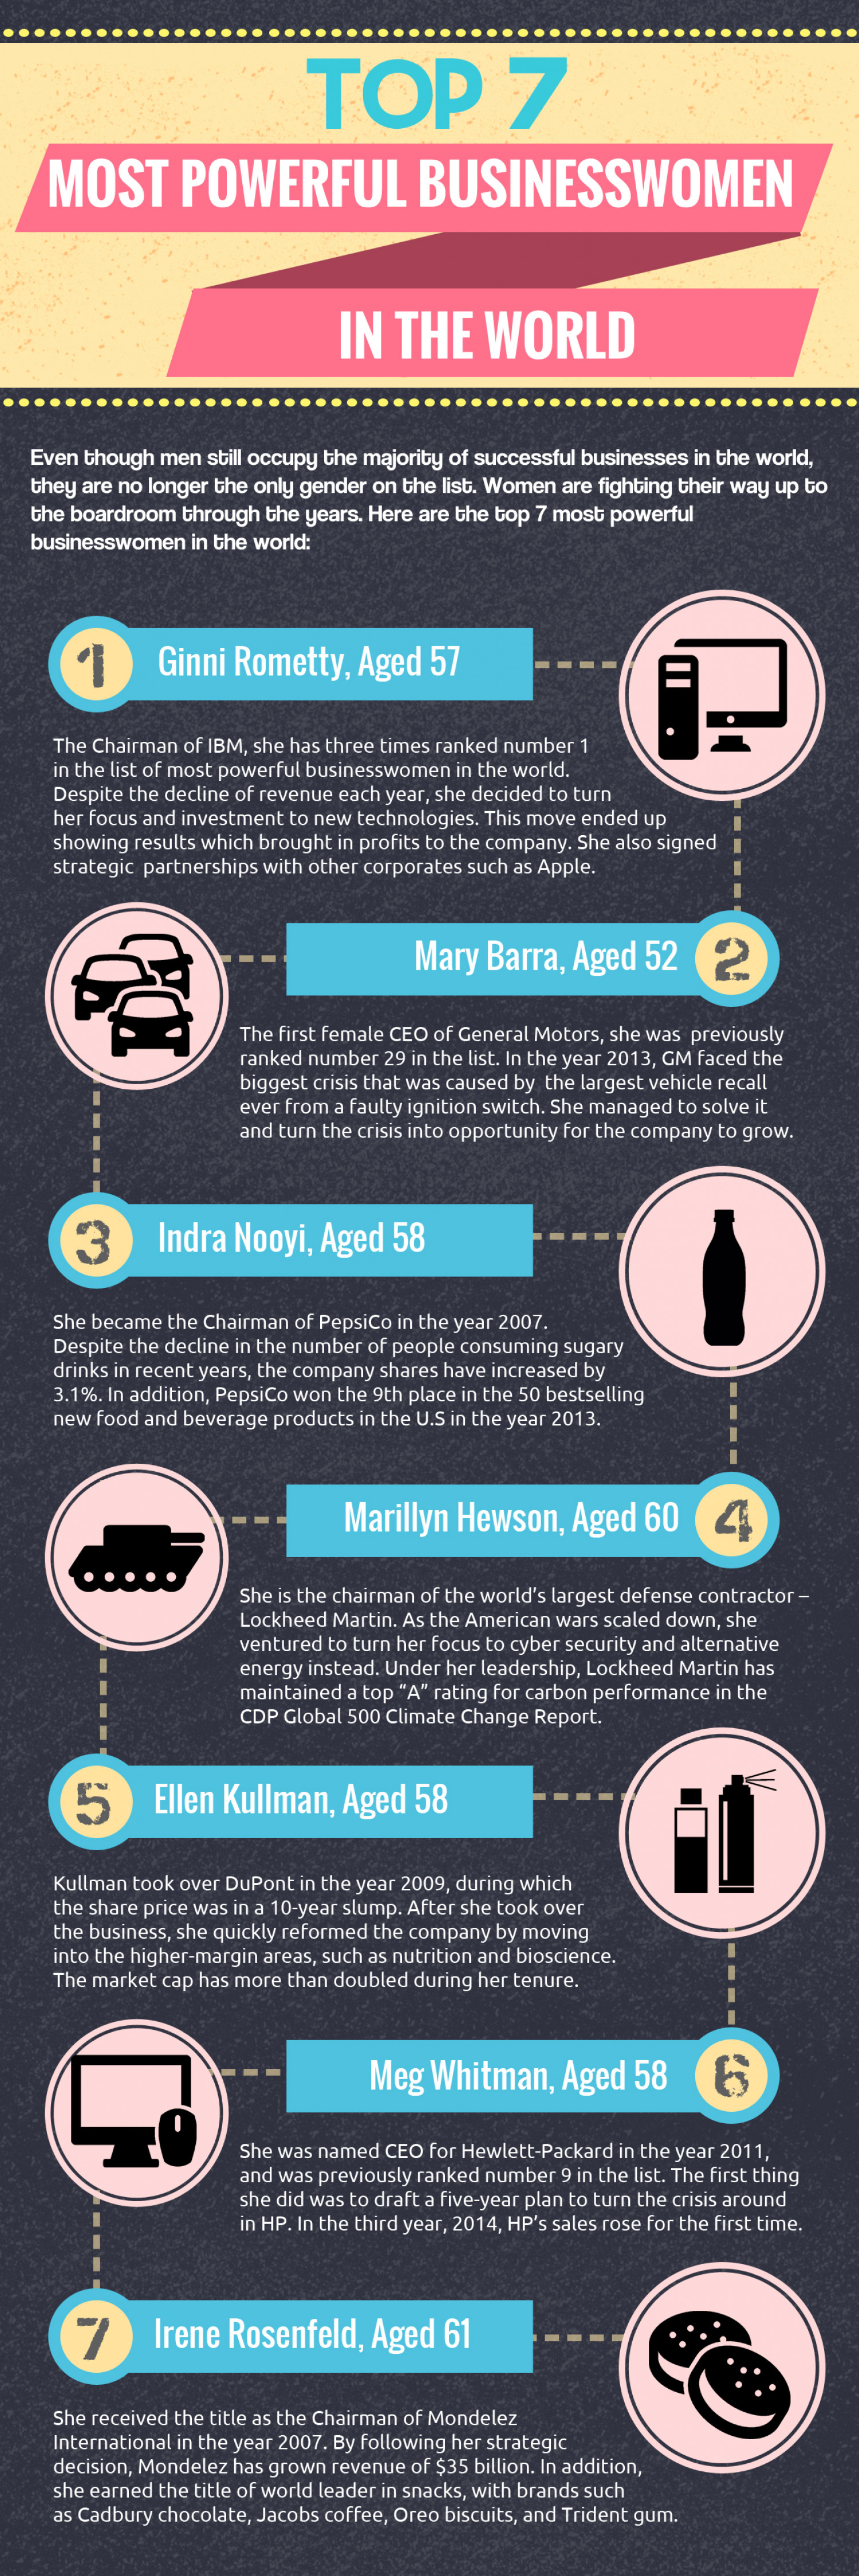 Top 7 Most Powerful Businesswomen in the World Infographic